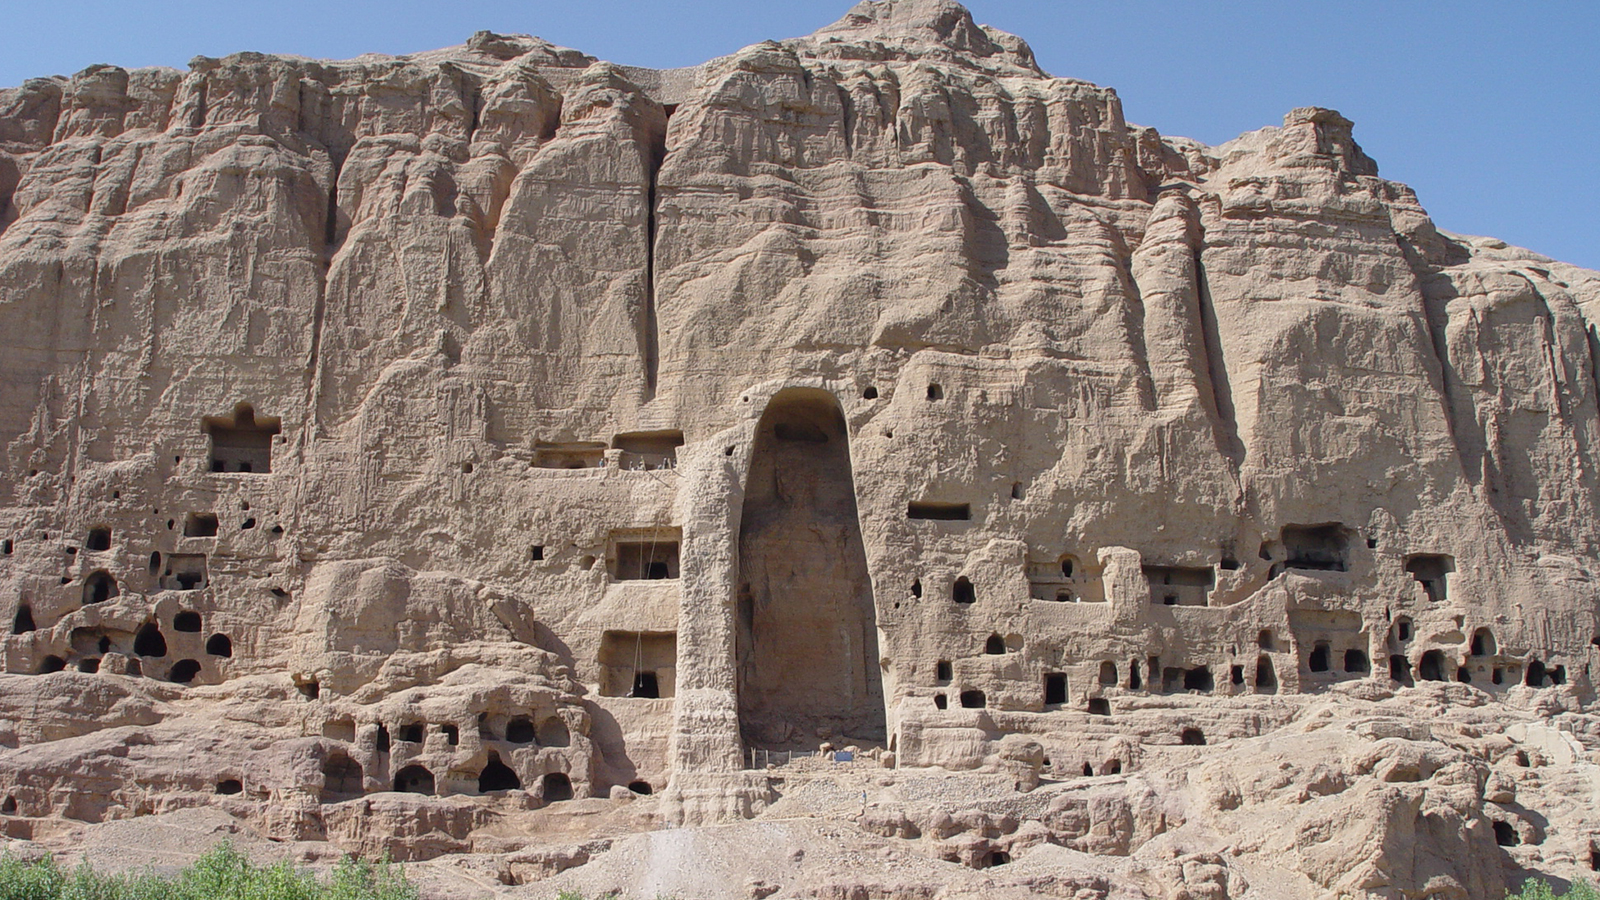 The projects to assist the conservation of cultural heritage in Afghanistan